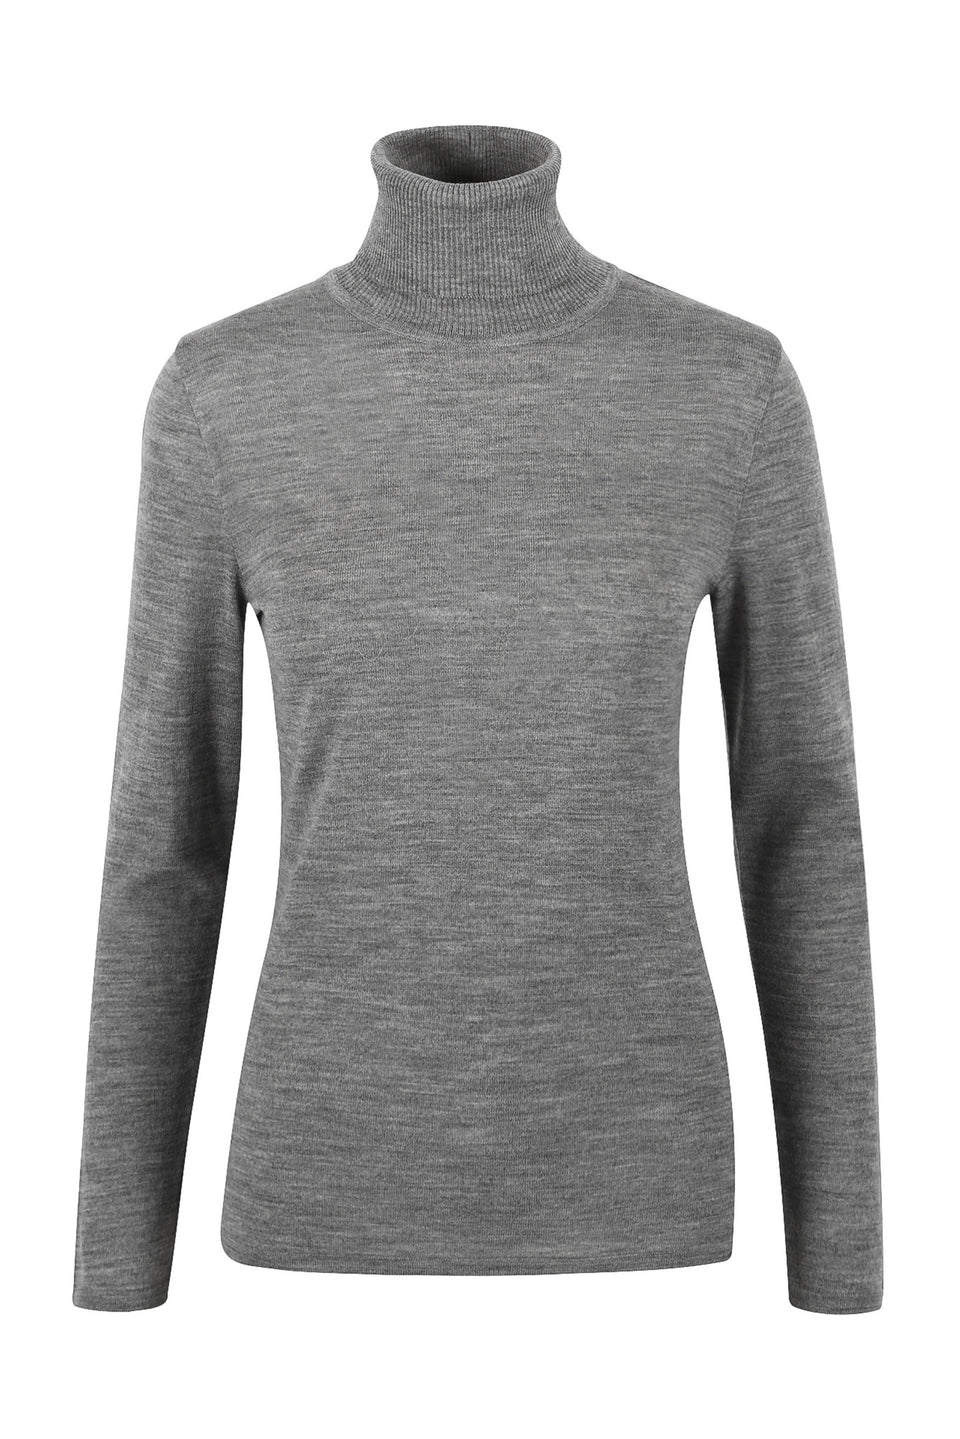 Women's Merino Polo (Turtle neck)